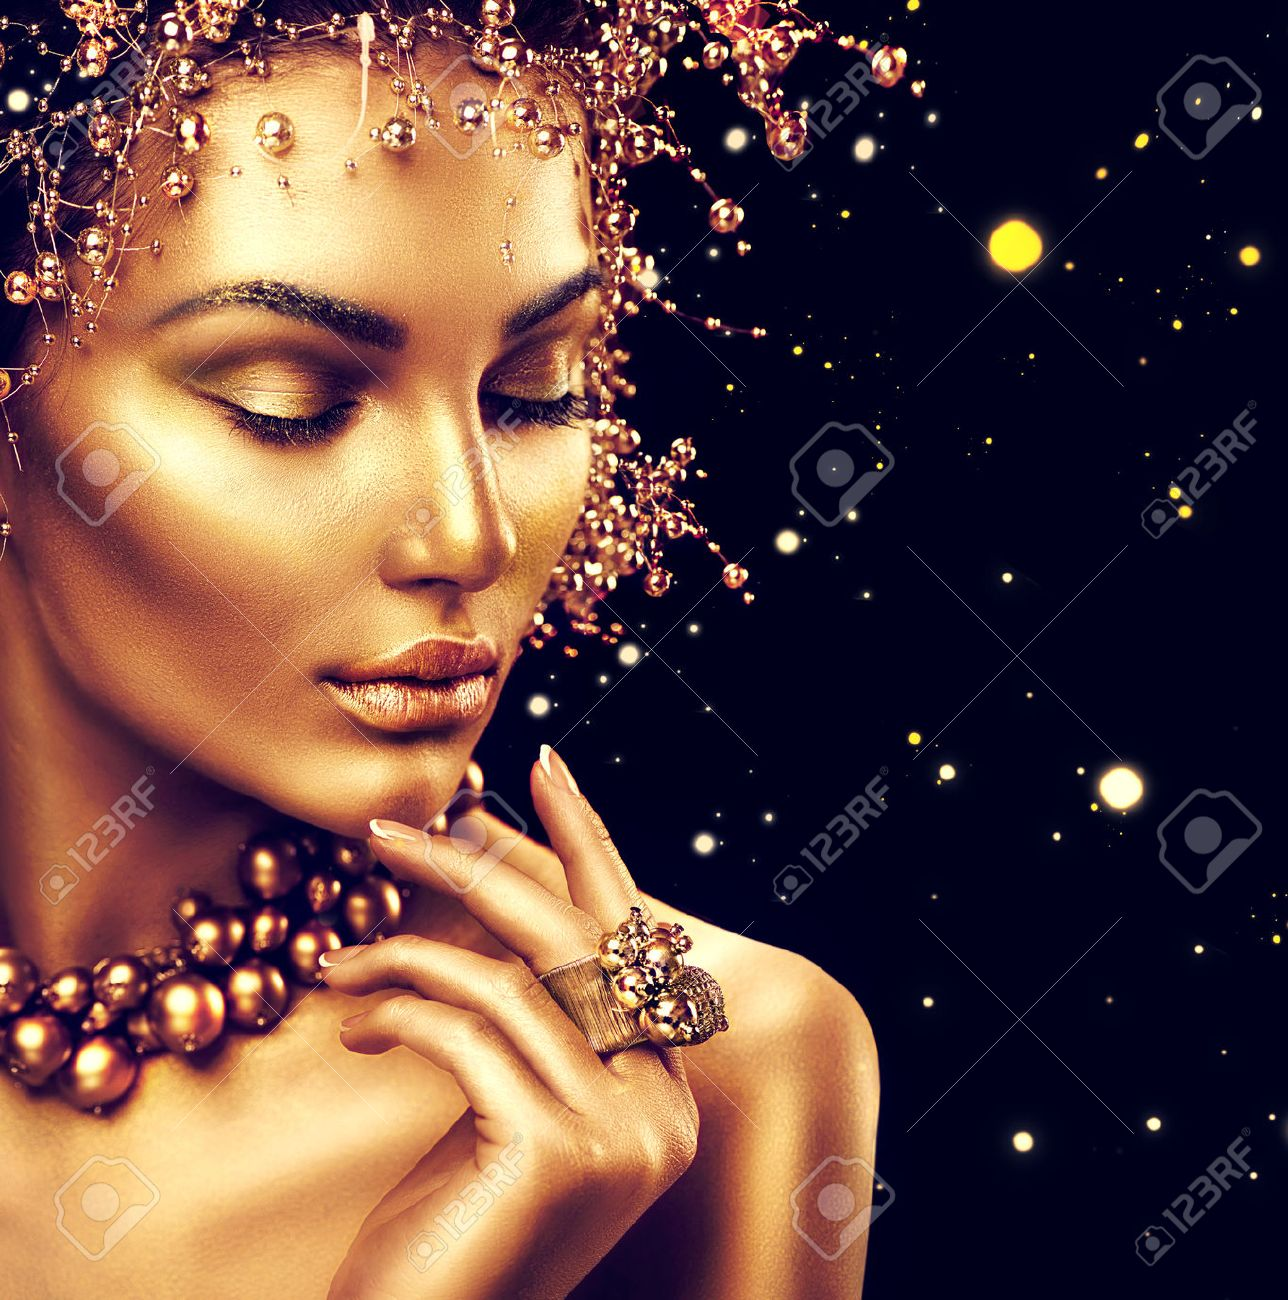 Beauty fashion model girl with golden skin, makeup and hairstyle isolated on black background Banque d'images - 66155681